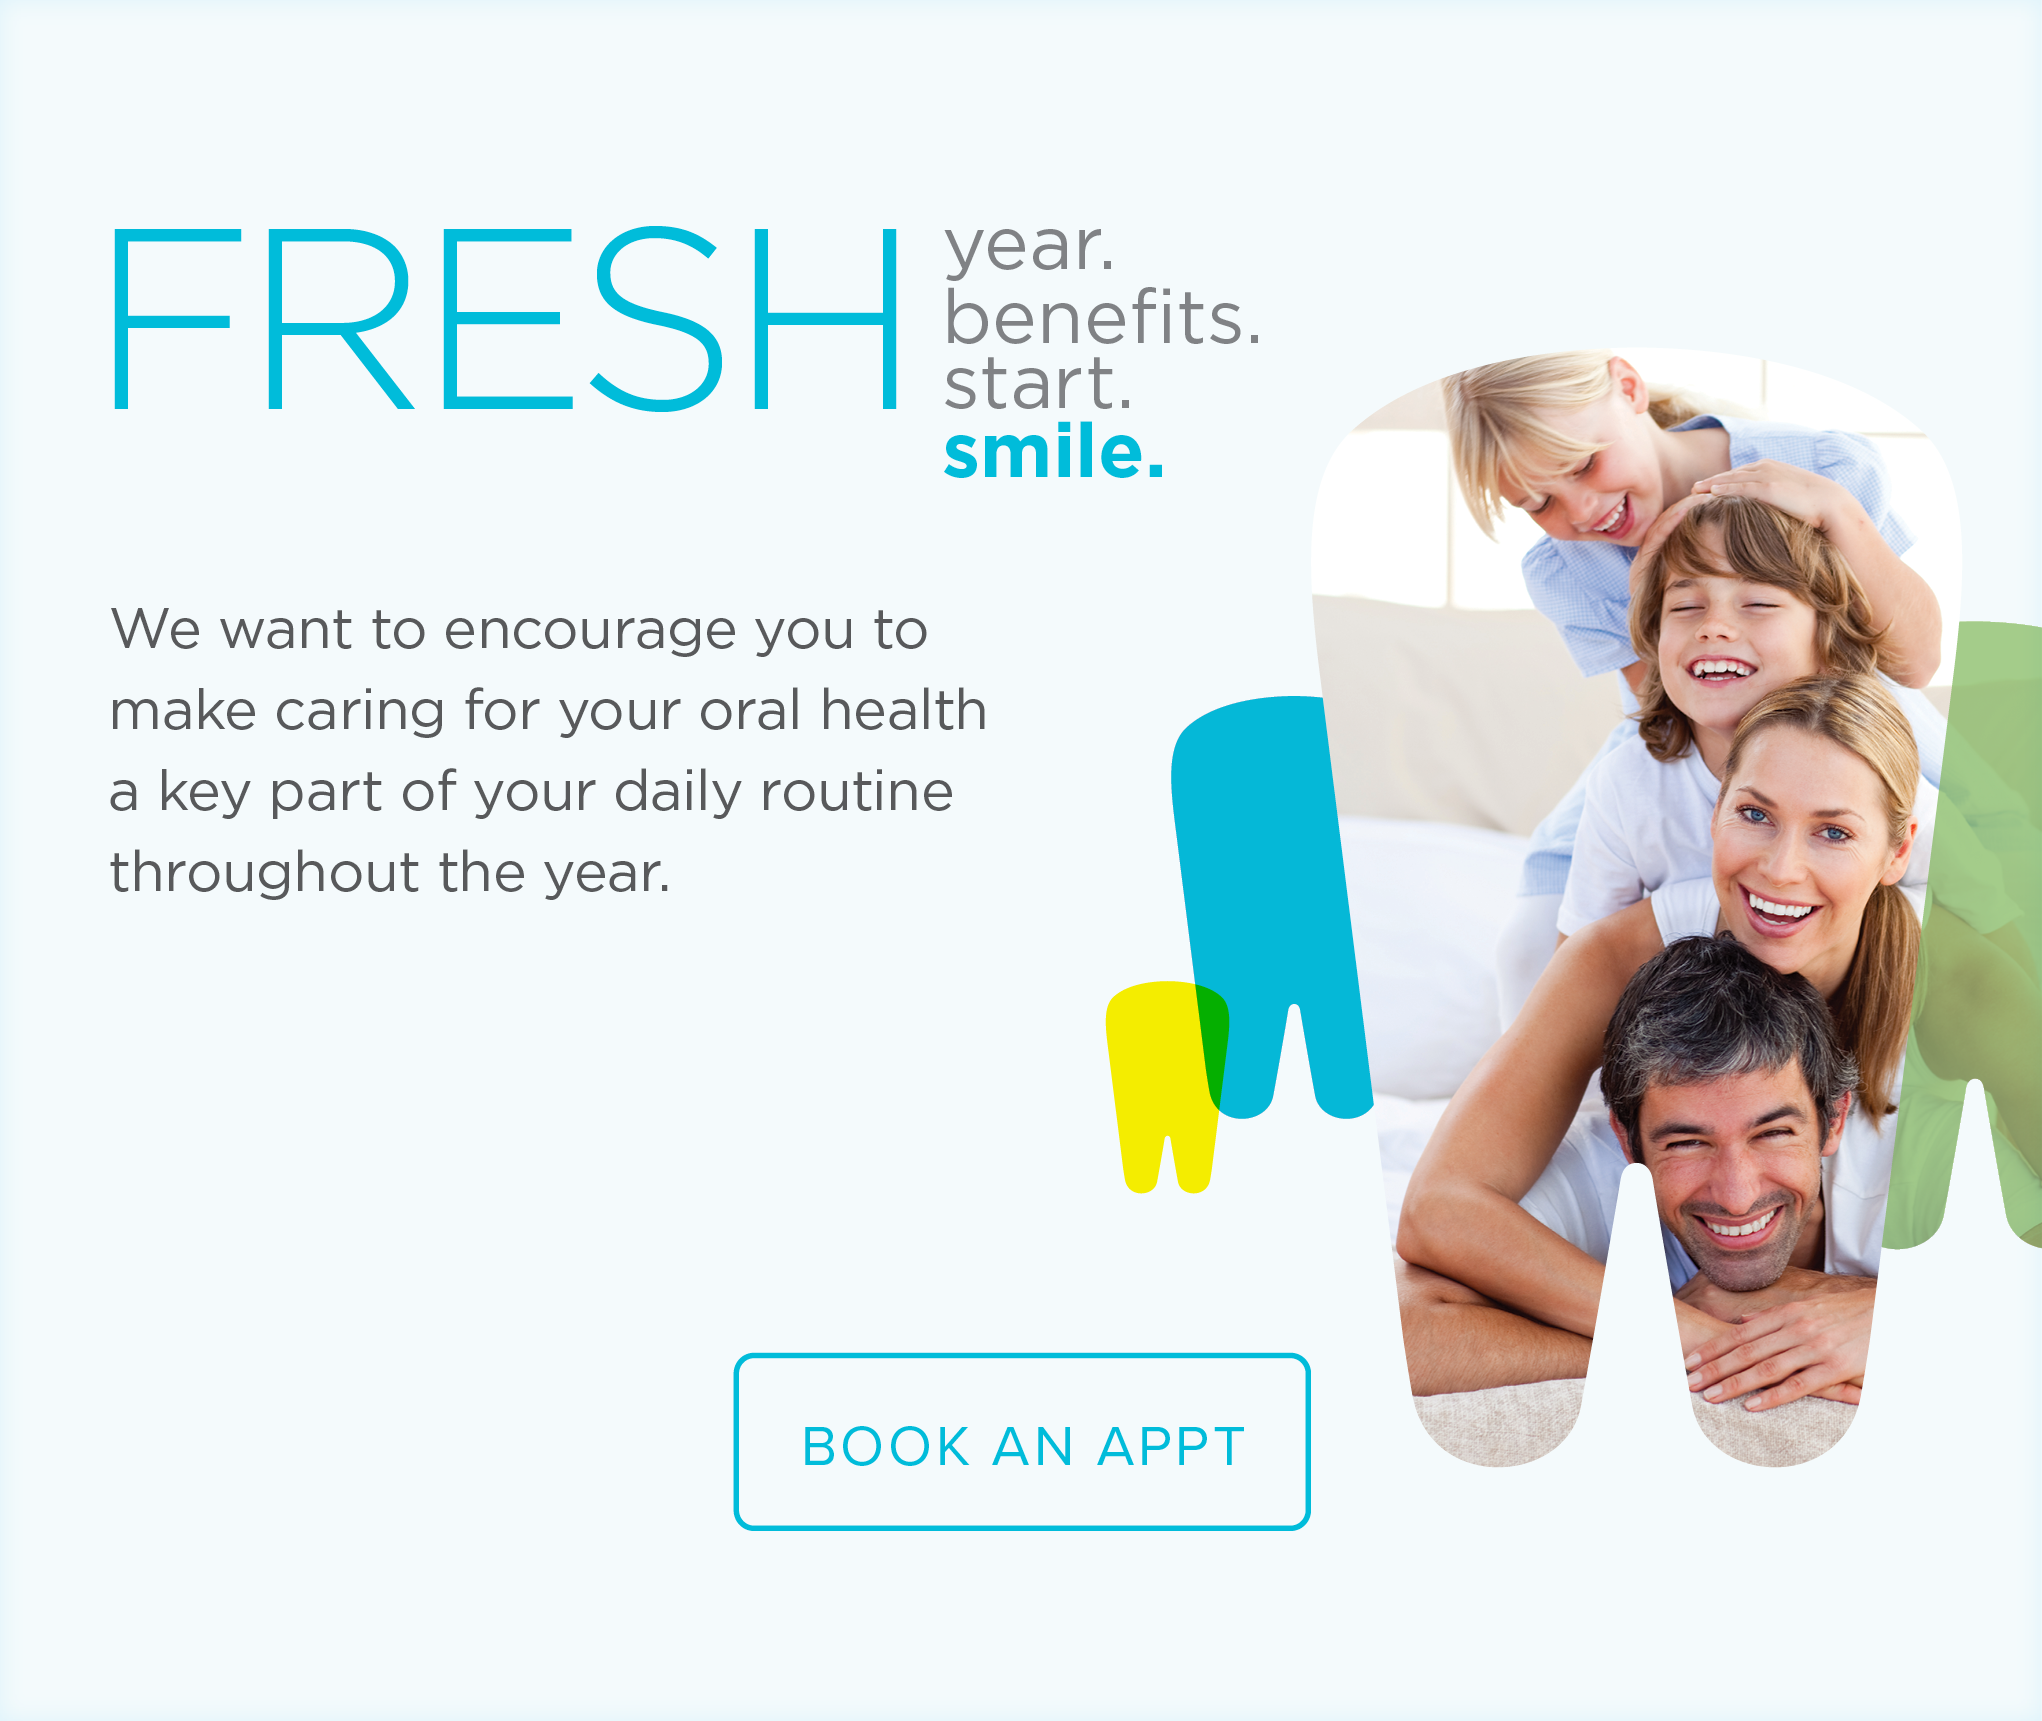 Rancho Mirage Dental Group - Make the Most of Your Benefits